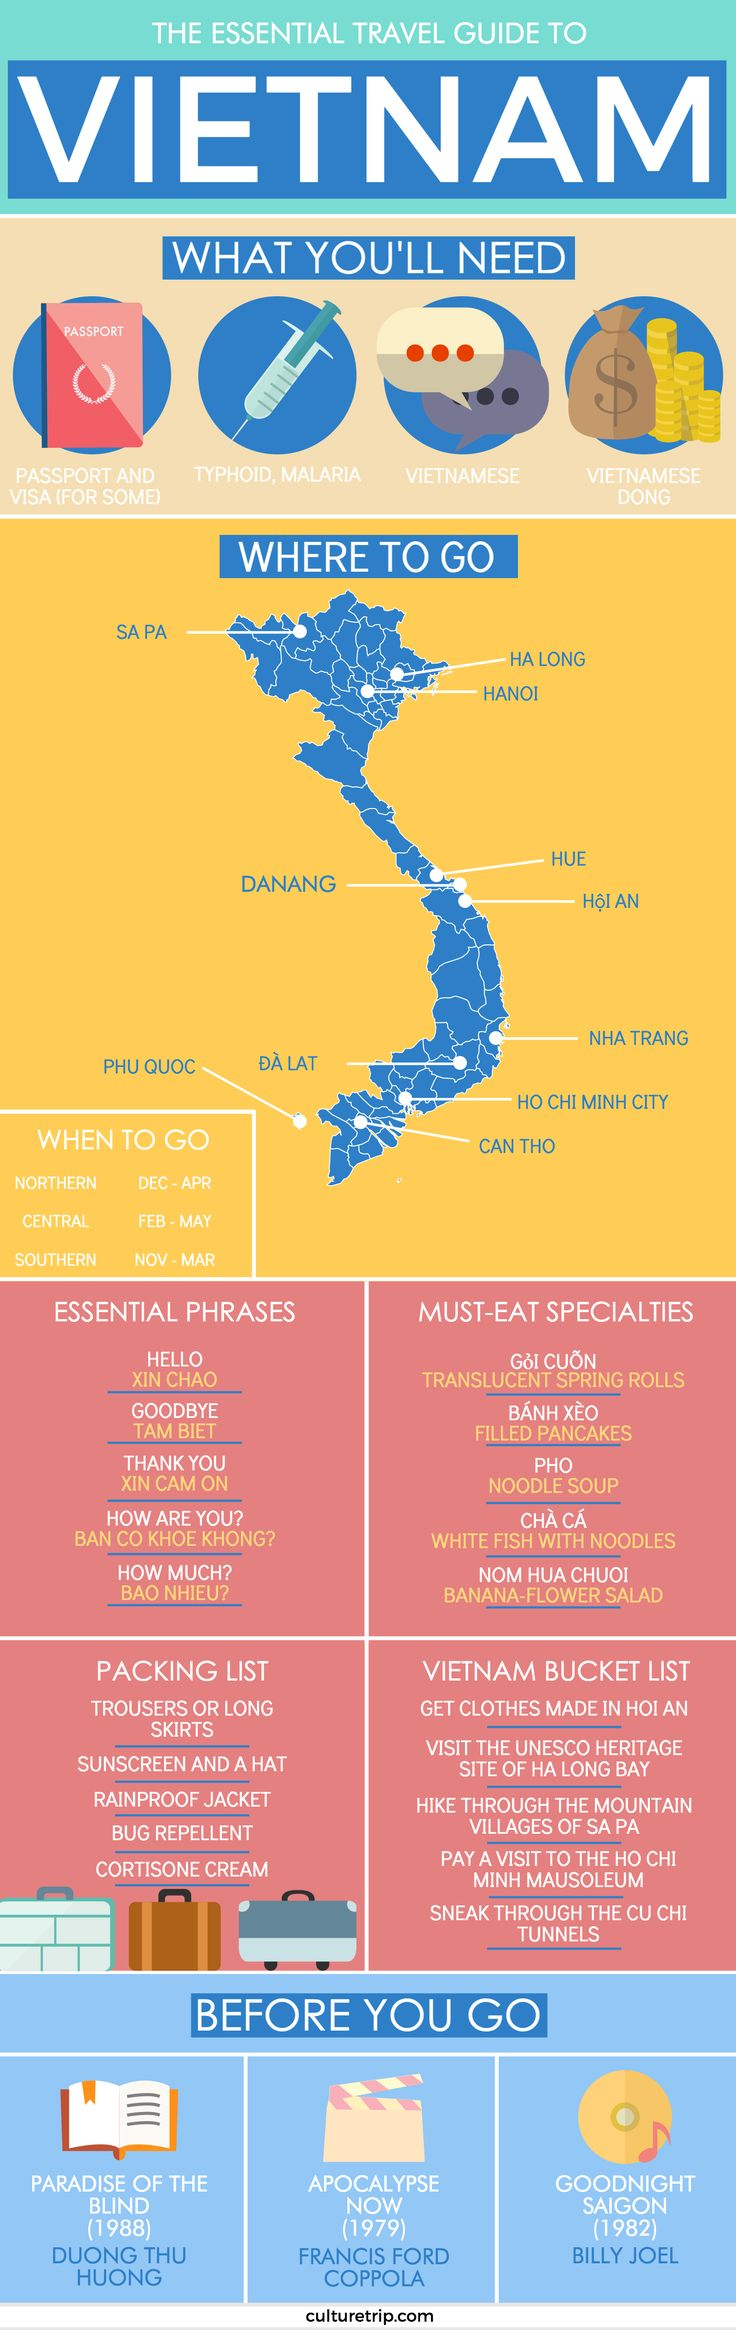 The Ultimate Travel Guide To Vietnam